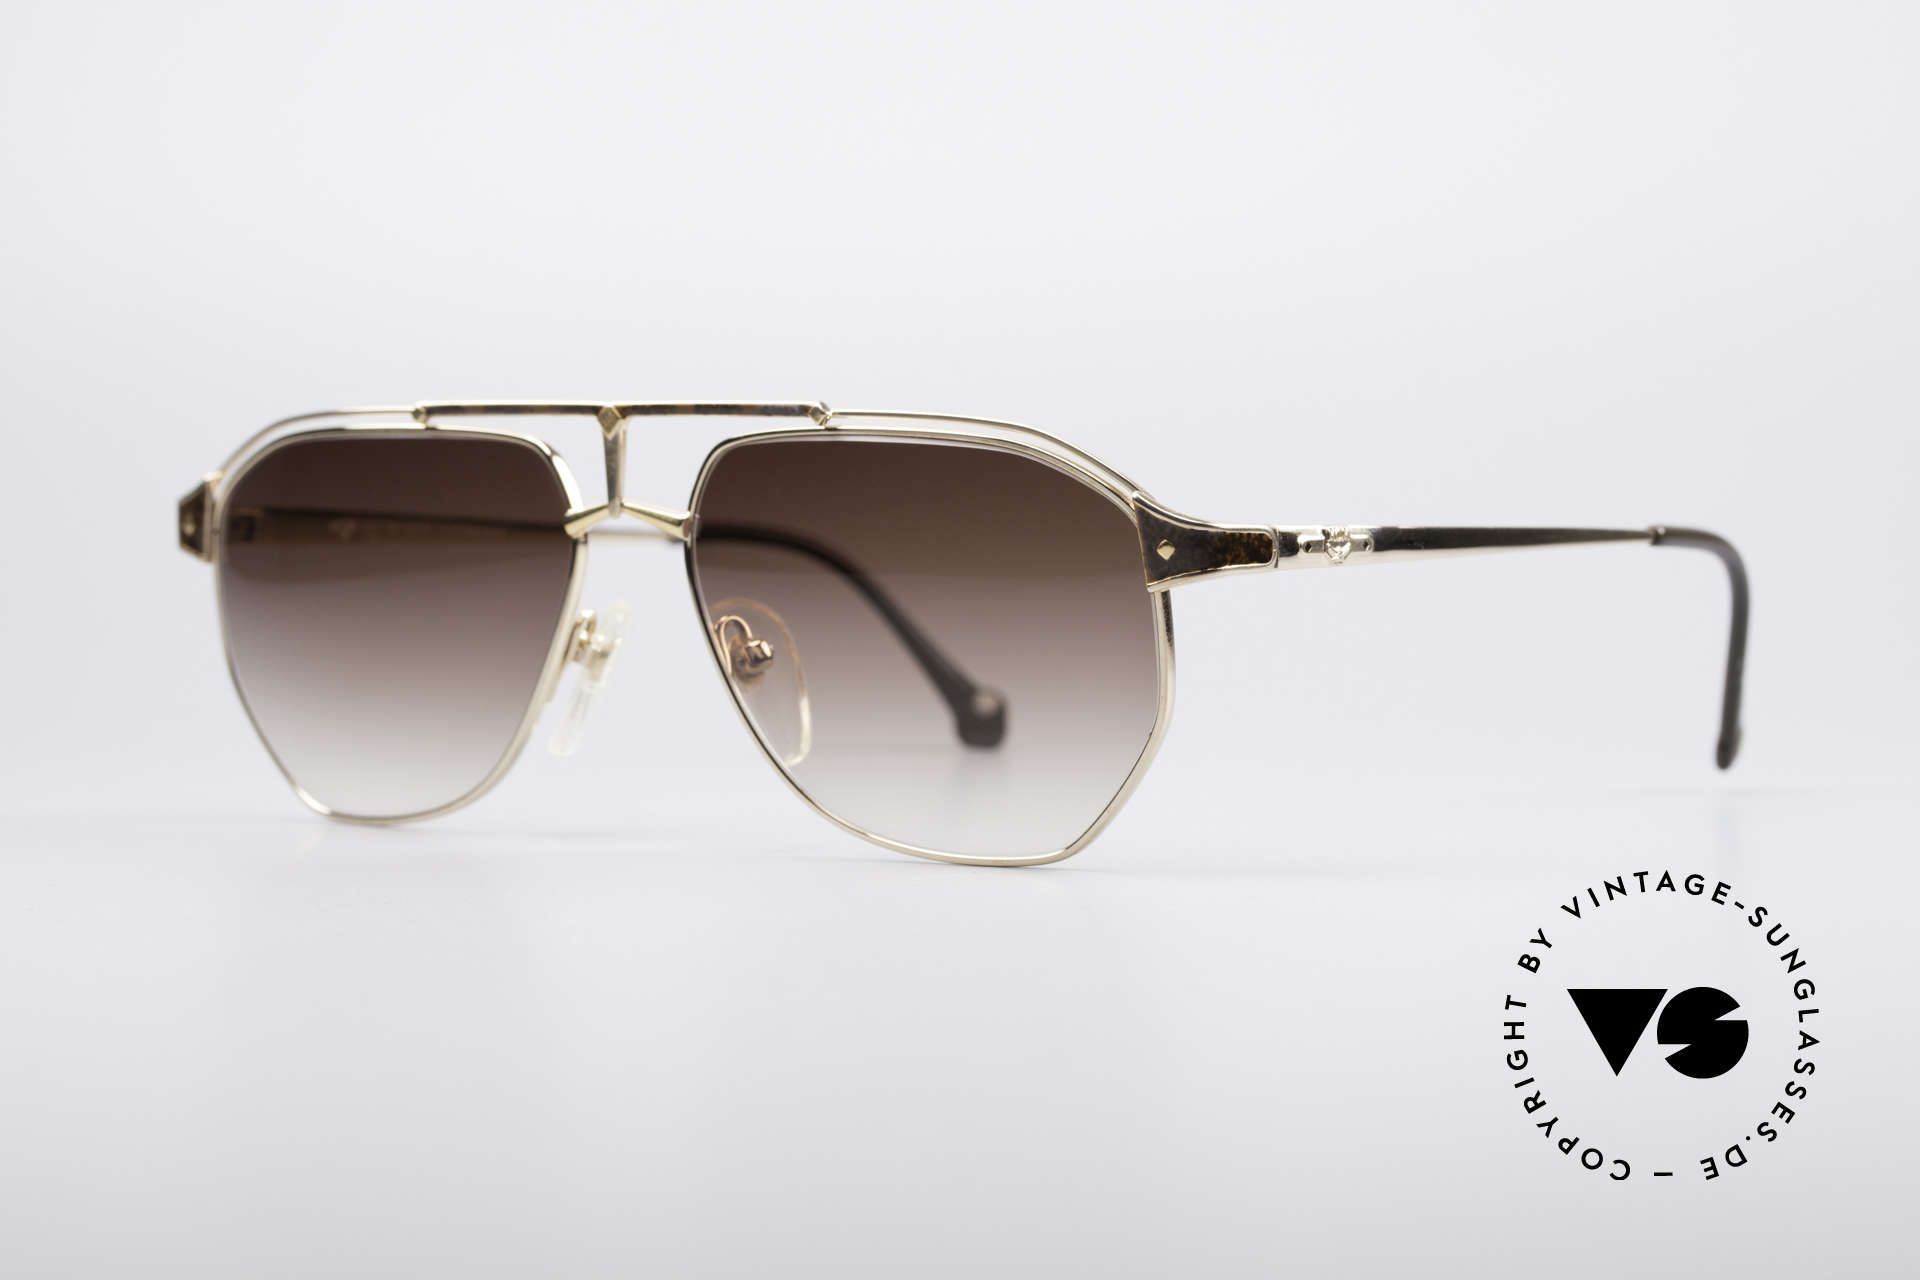 MCM München 6 XL 90's Luxury Shades, but still lightweight and comfortable (Pure Titanium), Made for Men